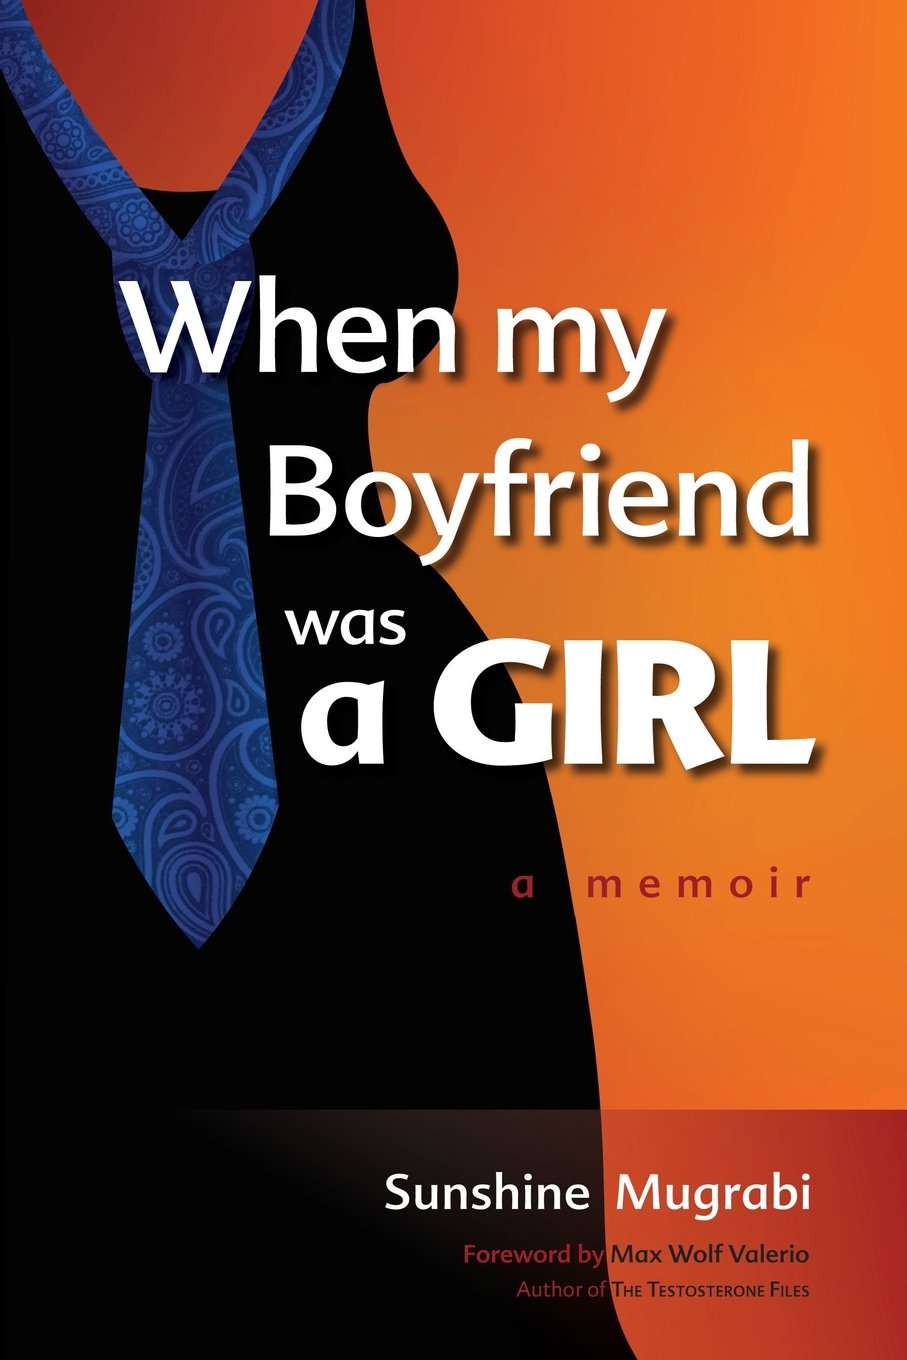 when my boyfriend was a girl a memoir sunshine mugrabi max wolf  when my boyfriend was a girl a memoir sunshine mugrabi max wolf valerio leor mugrabi 9781495959929 com books